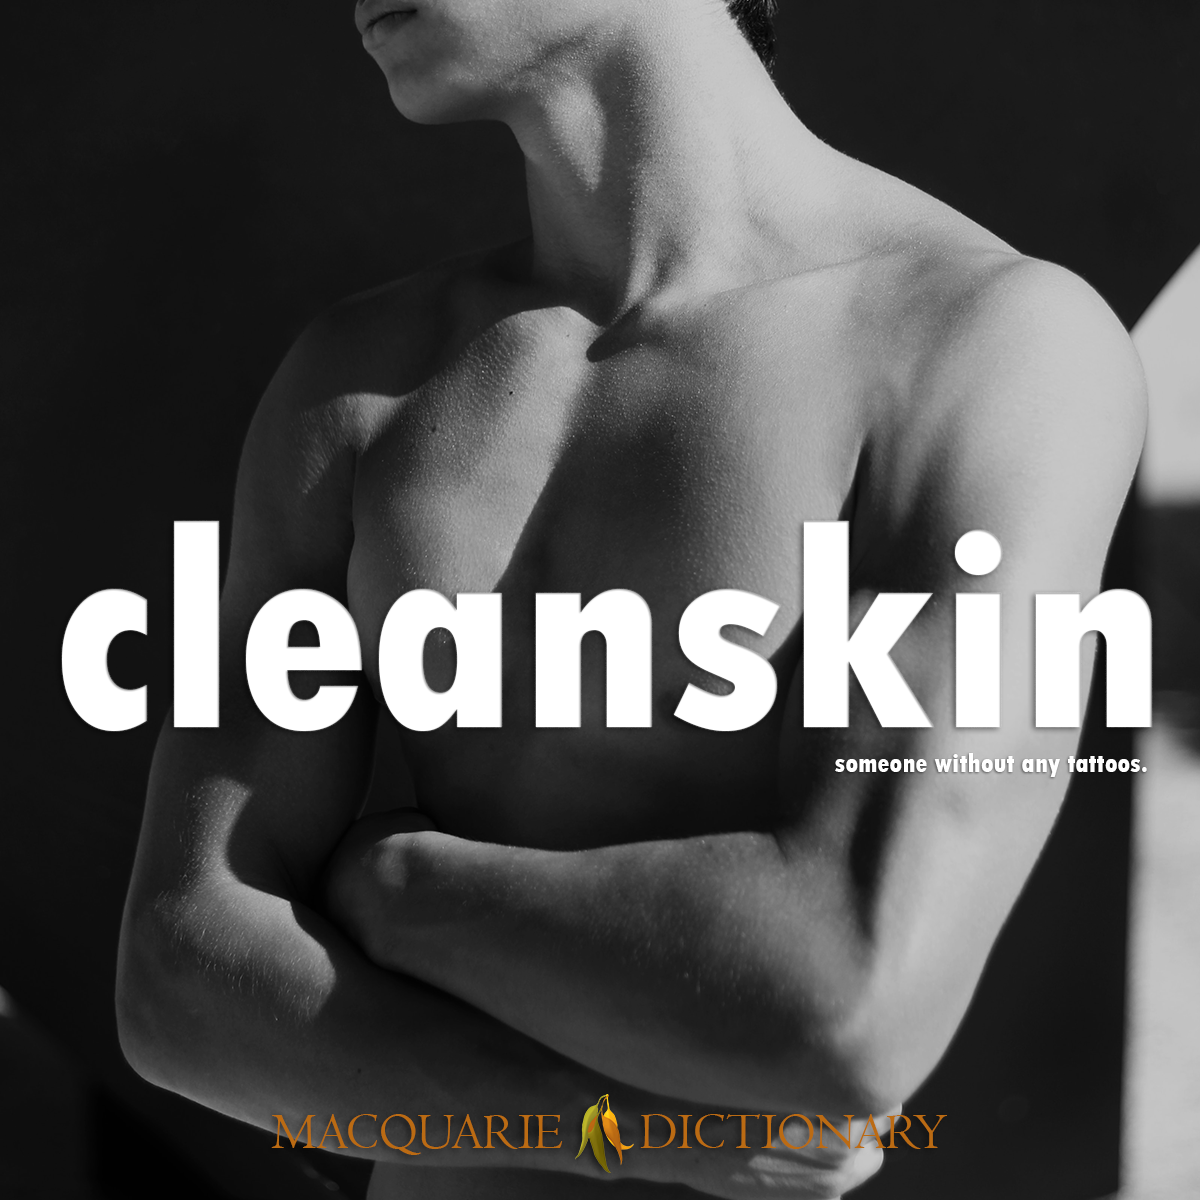 Image of Macquarie Dictionary Word of the Year cleanskin someone without any tattoos.